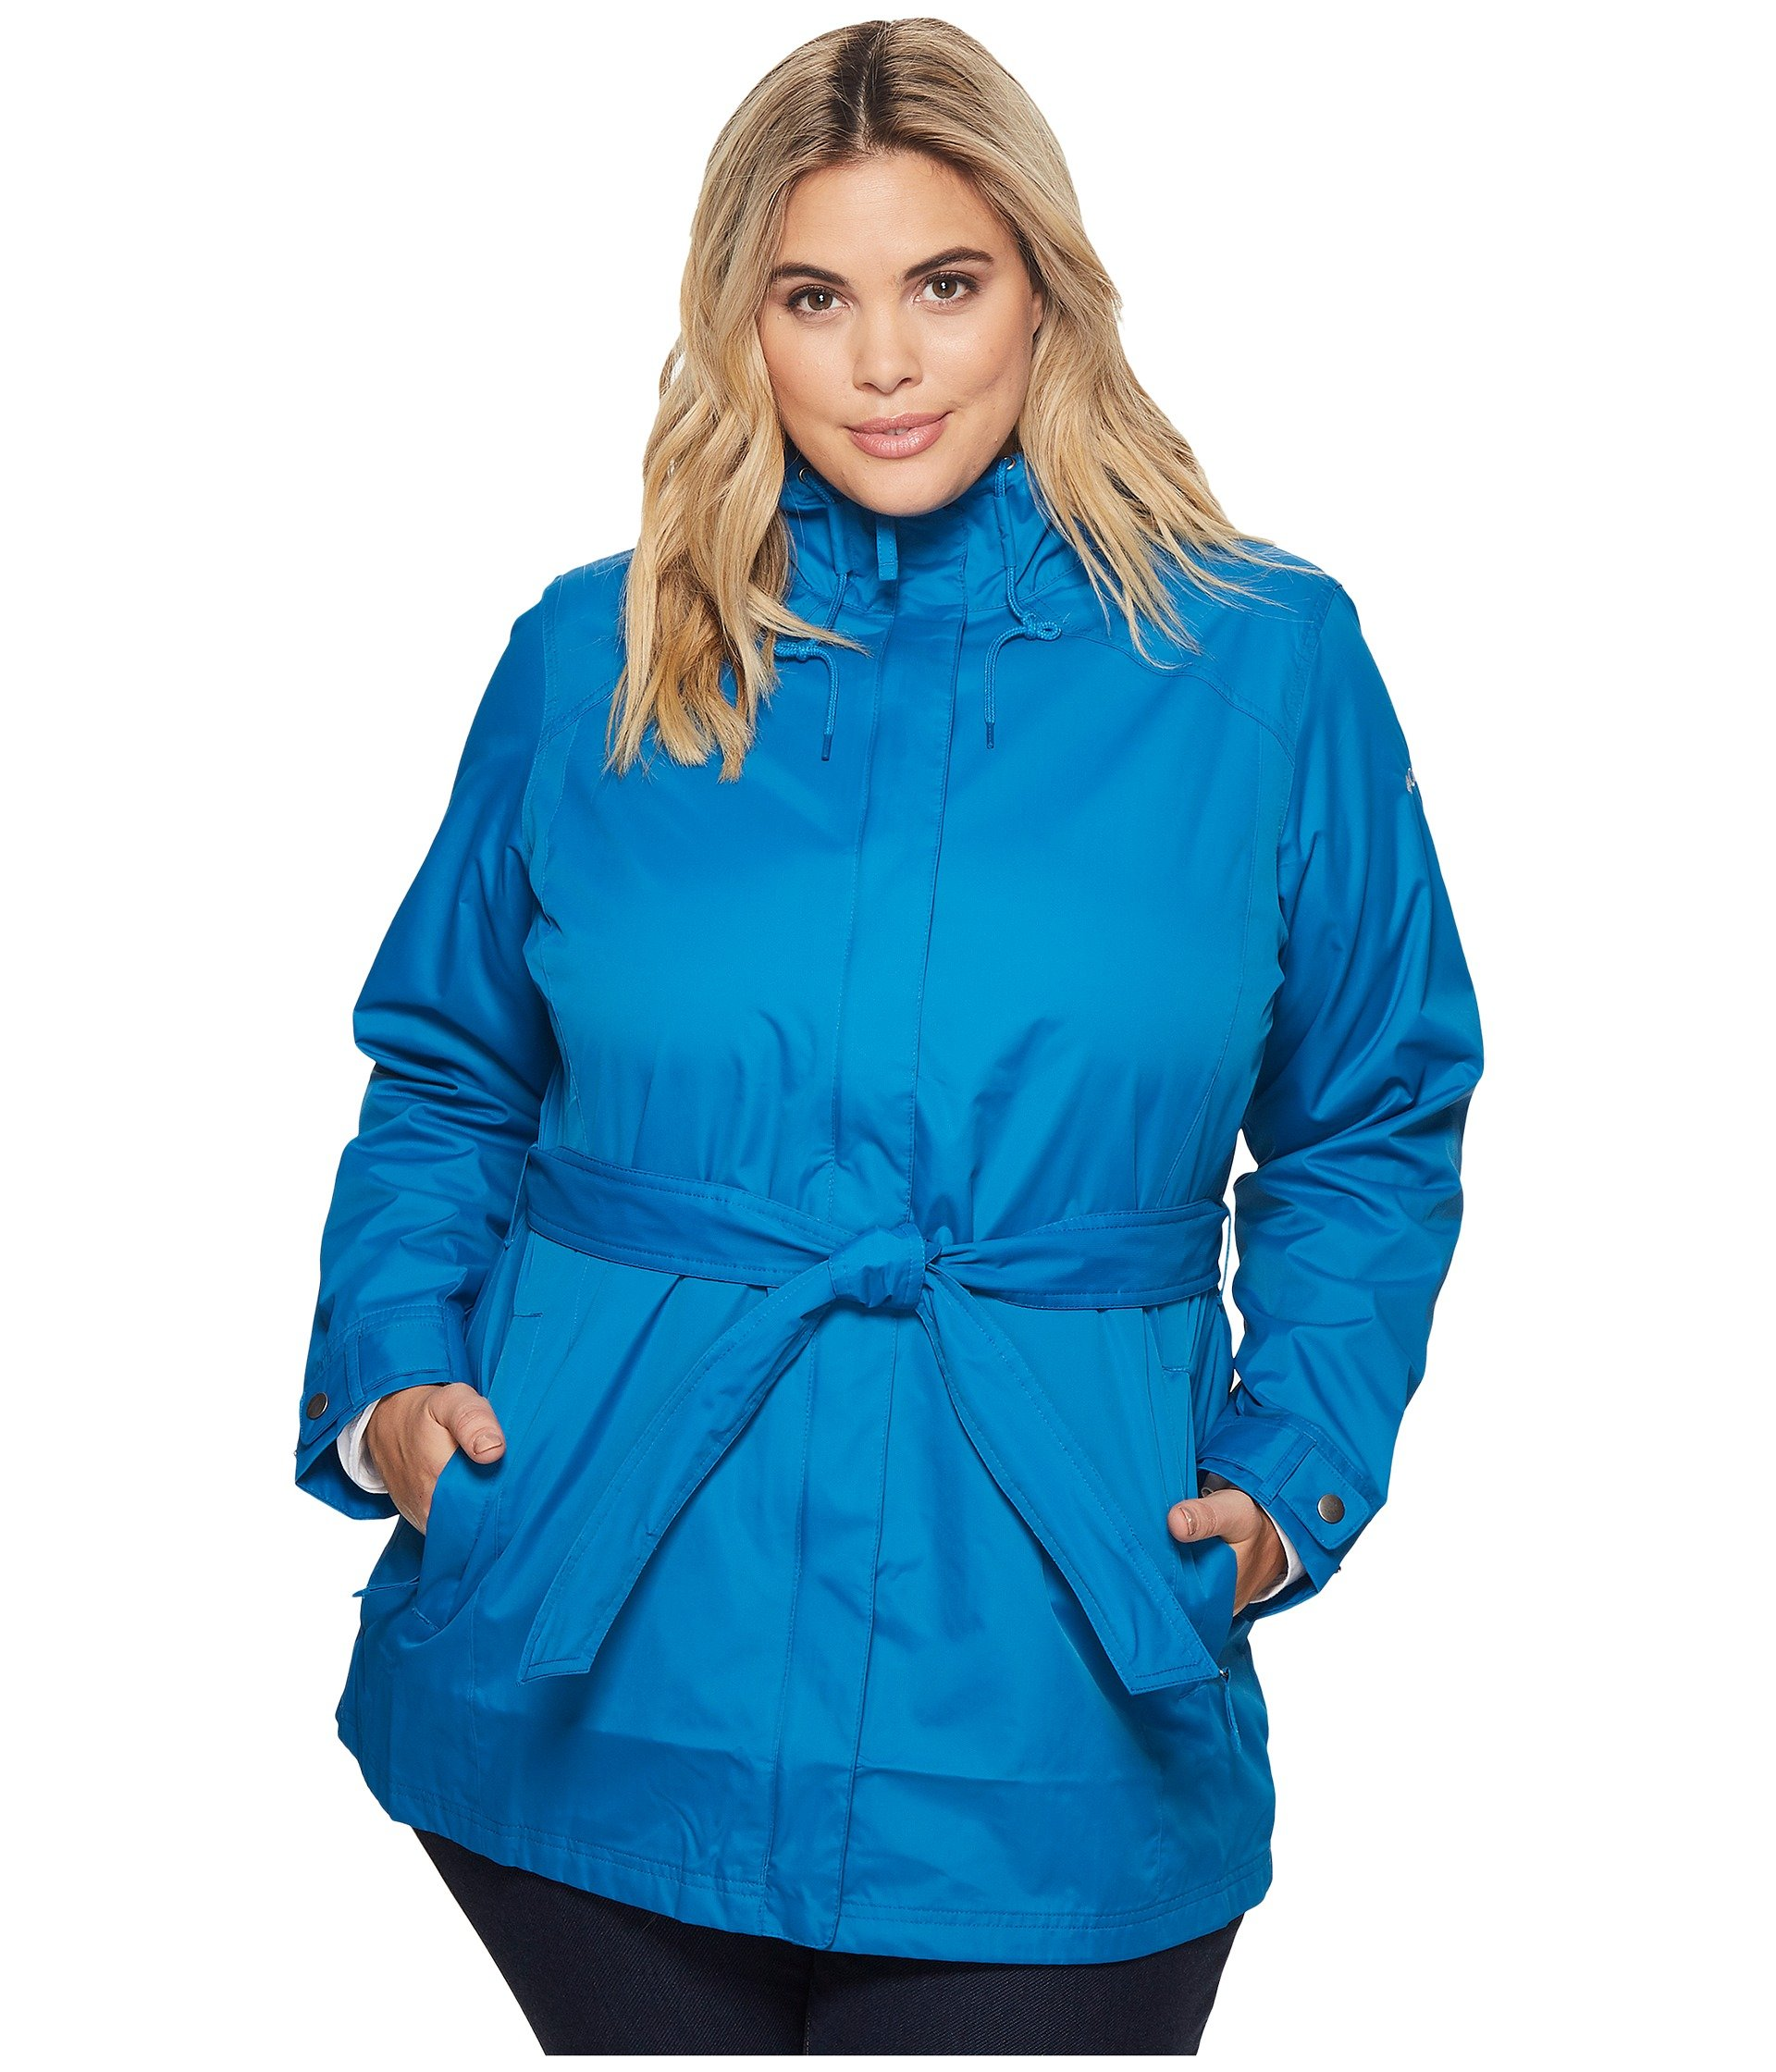 Columbia Women's Plus Size Pardon My Trench Rain Jacket, Jewel, 3X by Columbia